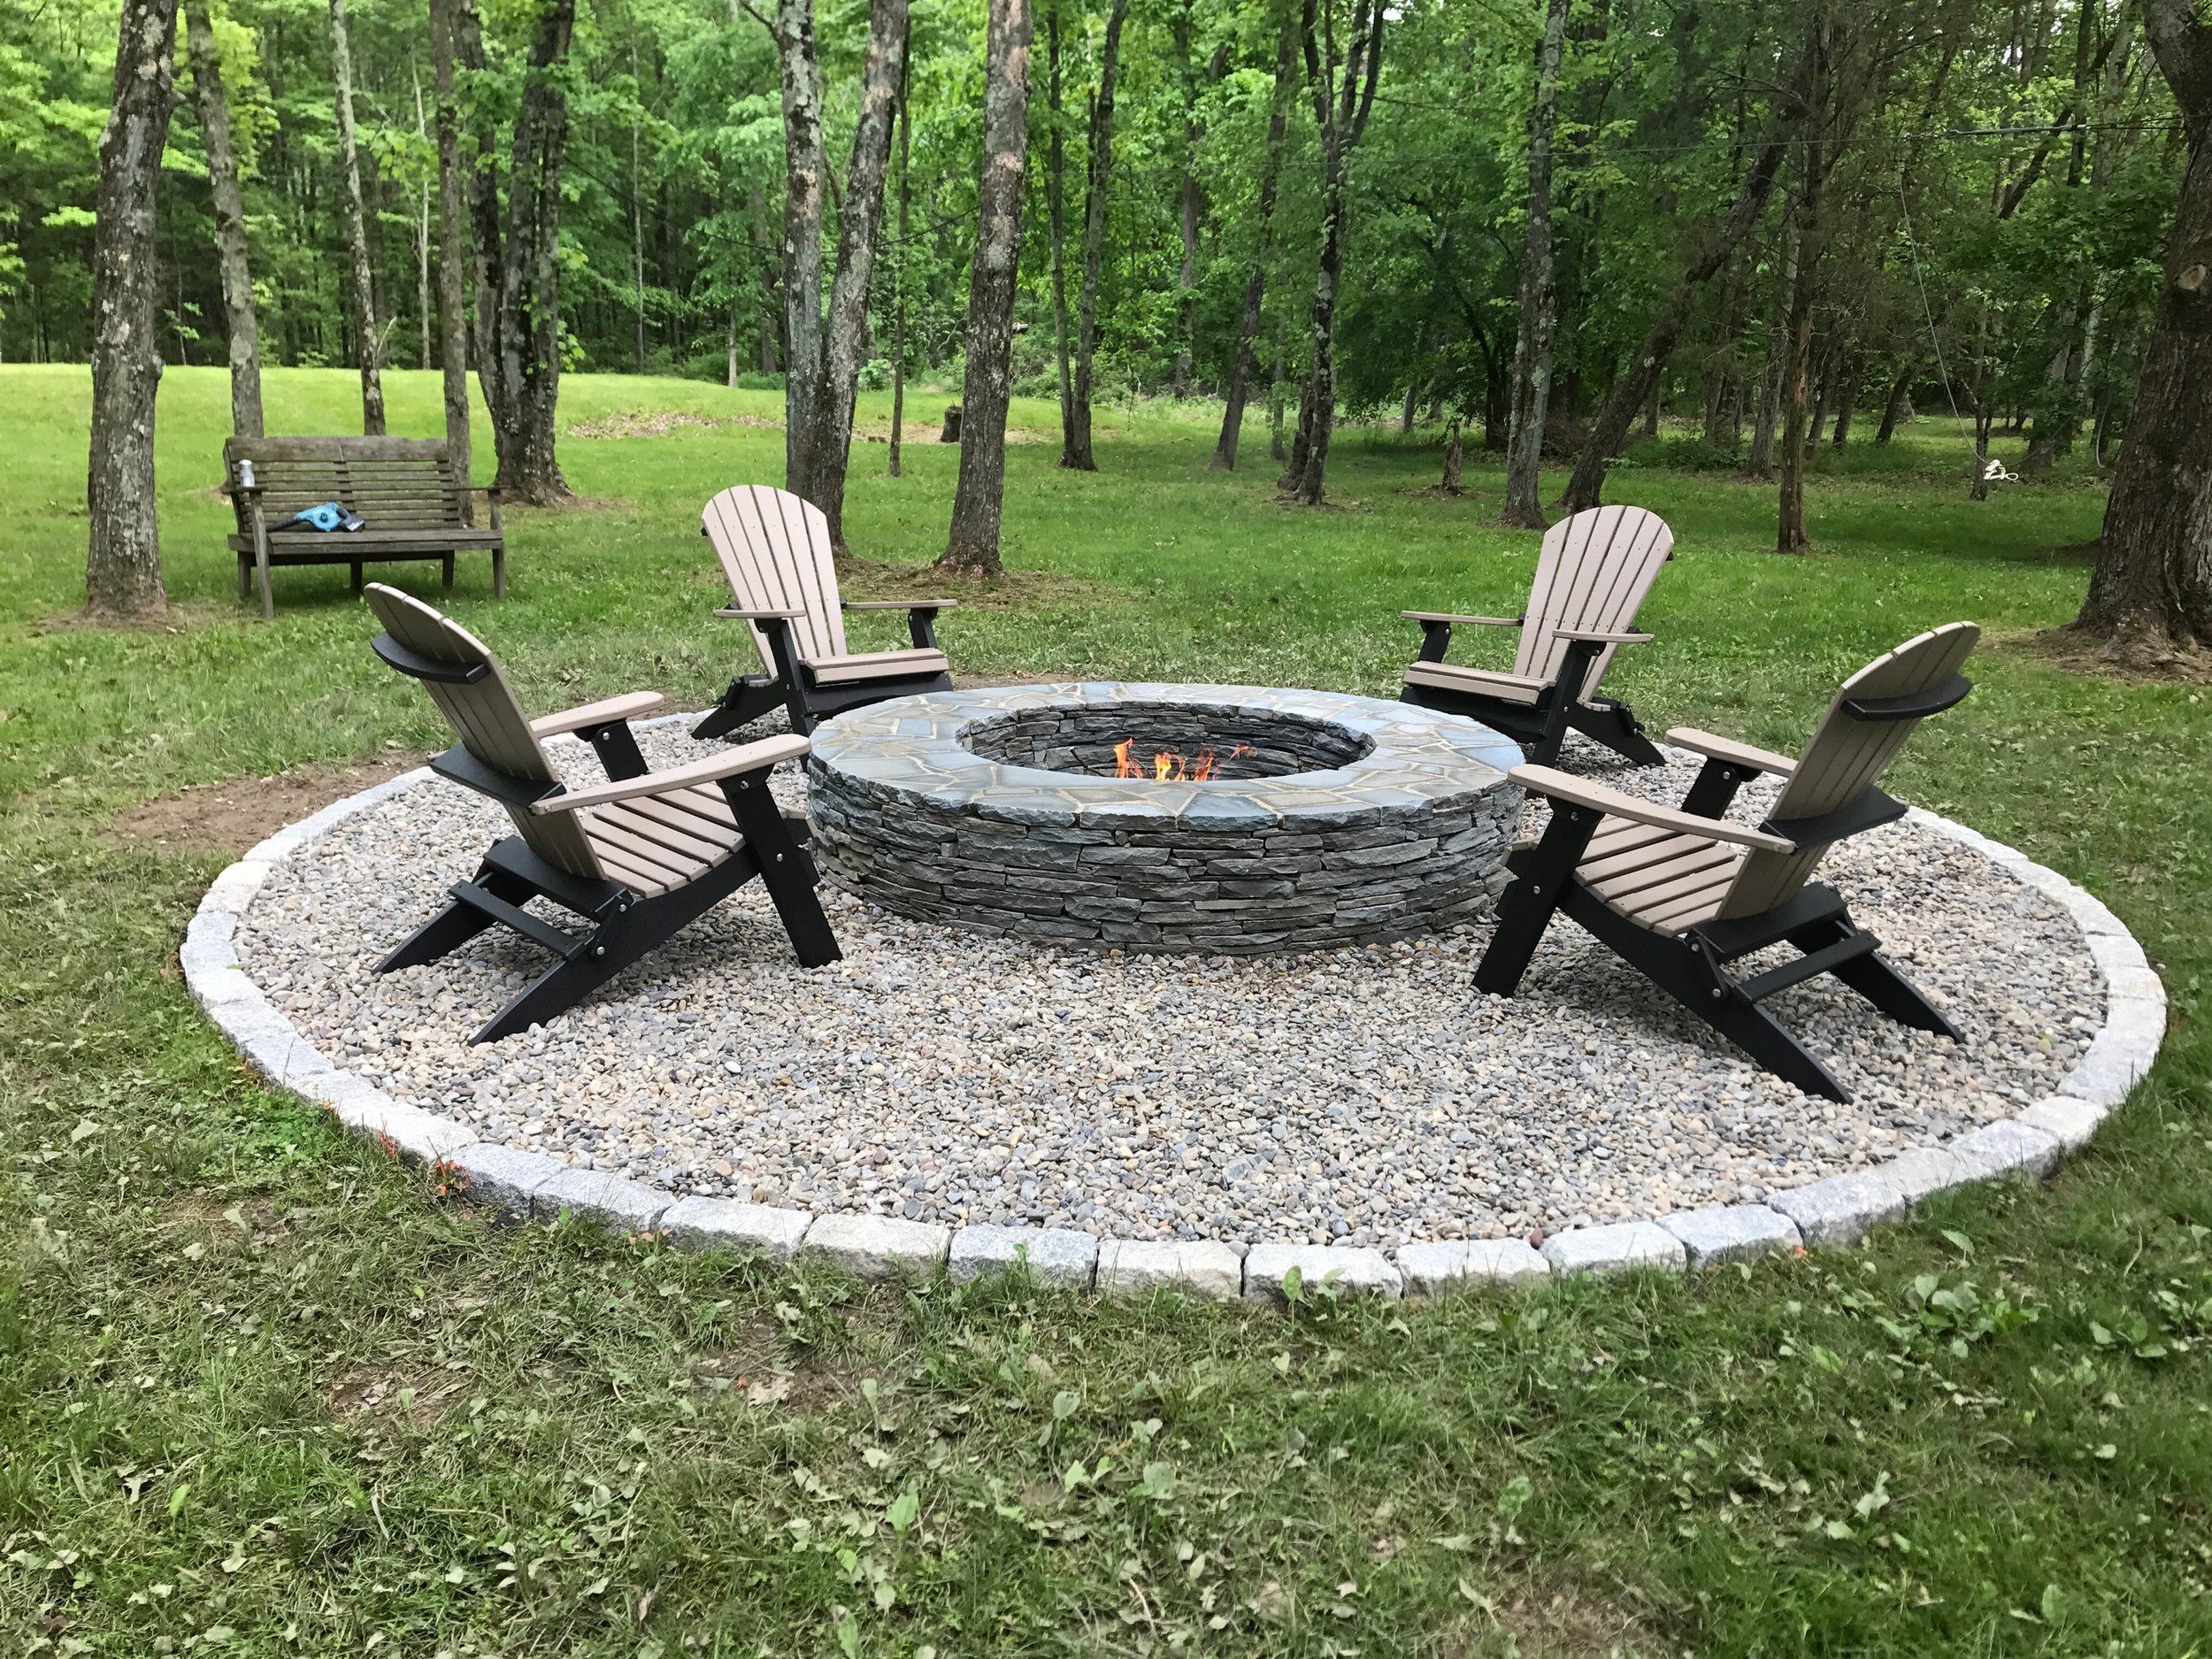 Once we had the Belgian block and river jack in place, we had a steady foundation to add some seating around the fire pit. We found the perfect poly wood chairs right around the corner! We purchased the chairs from   Country Wood Crafters   at their   Rice's Market   location. We think that the chairs really complete the fire pit area and love how the two-tone colors are a little different than what you would expect to see with a traditional Adirondak style chair.